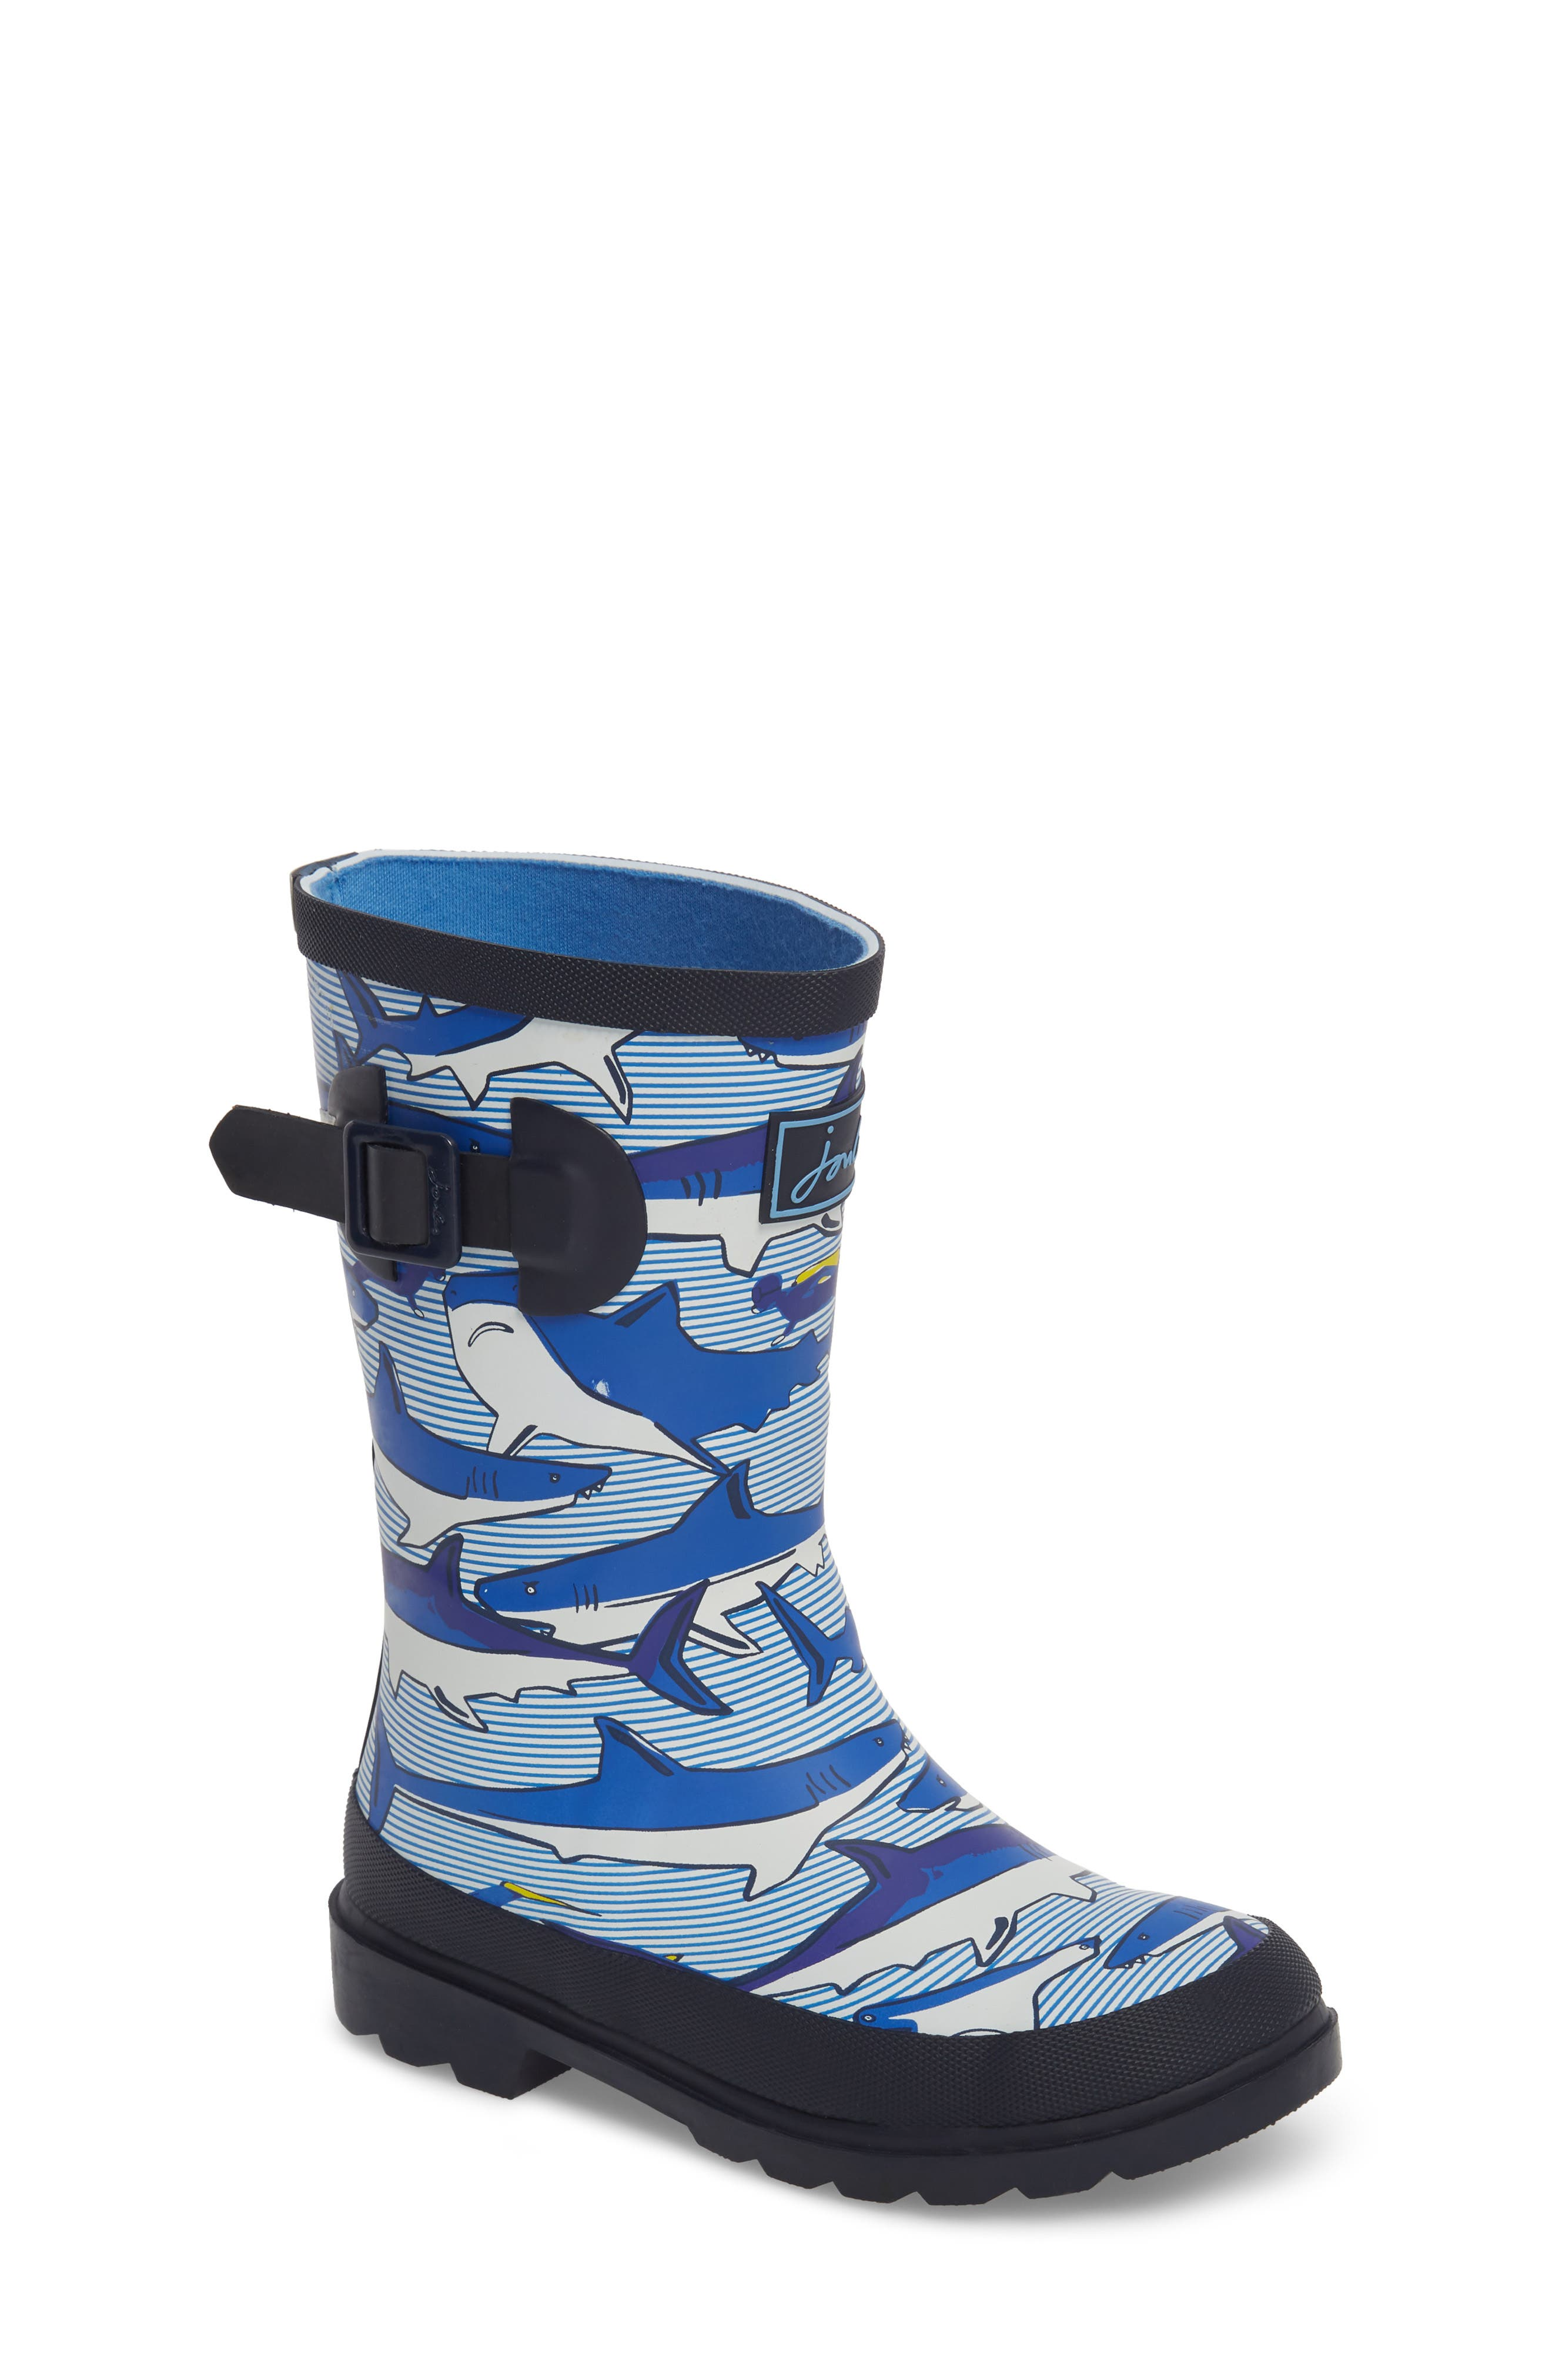 Alternate Image 1 Selected - Joules Mid Height Print Welly Rain Boot (Toddler, Little Kid & Big Kid)